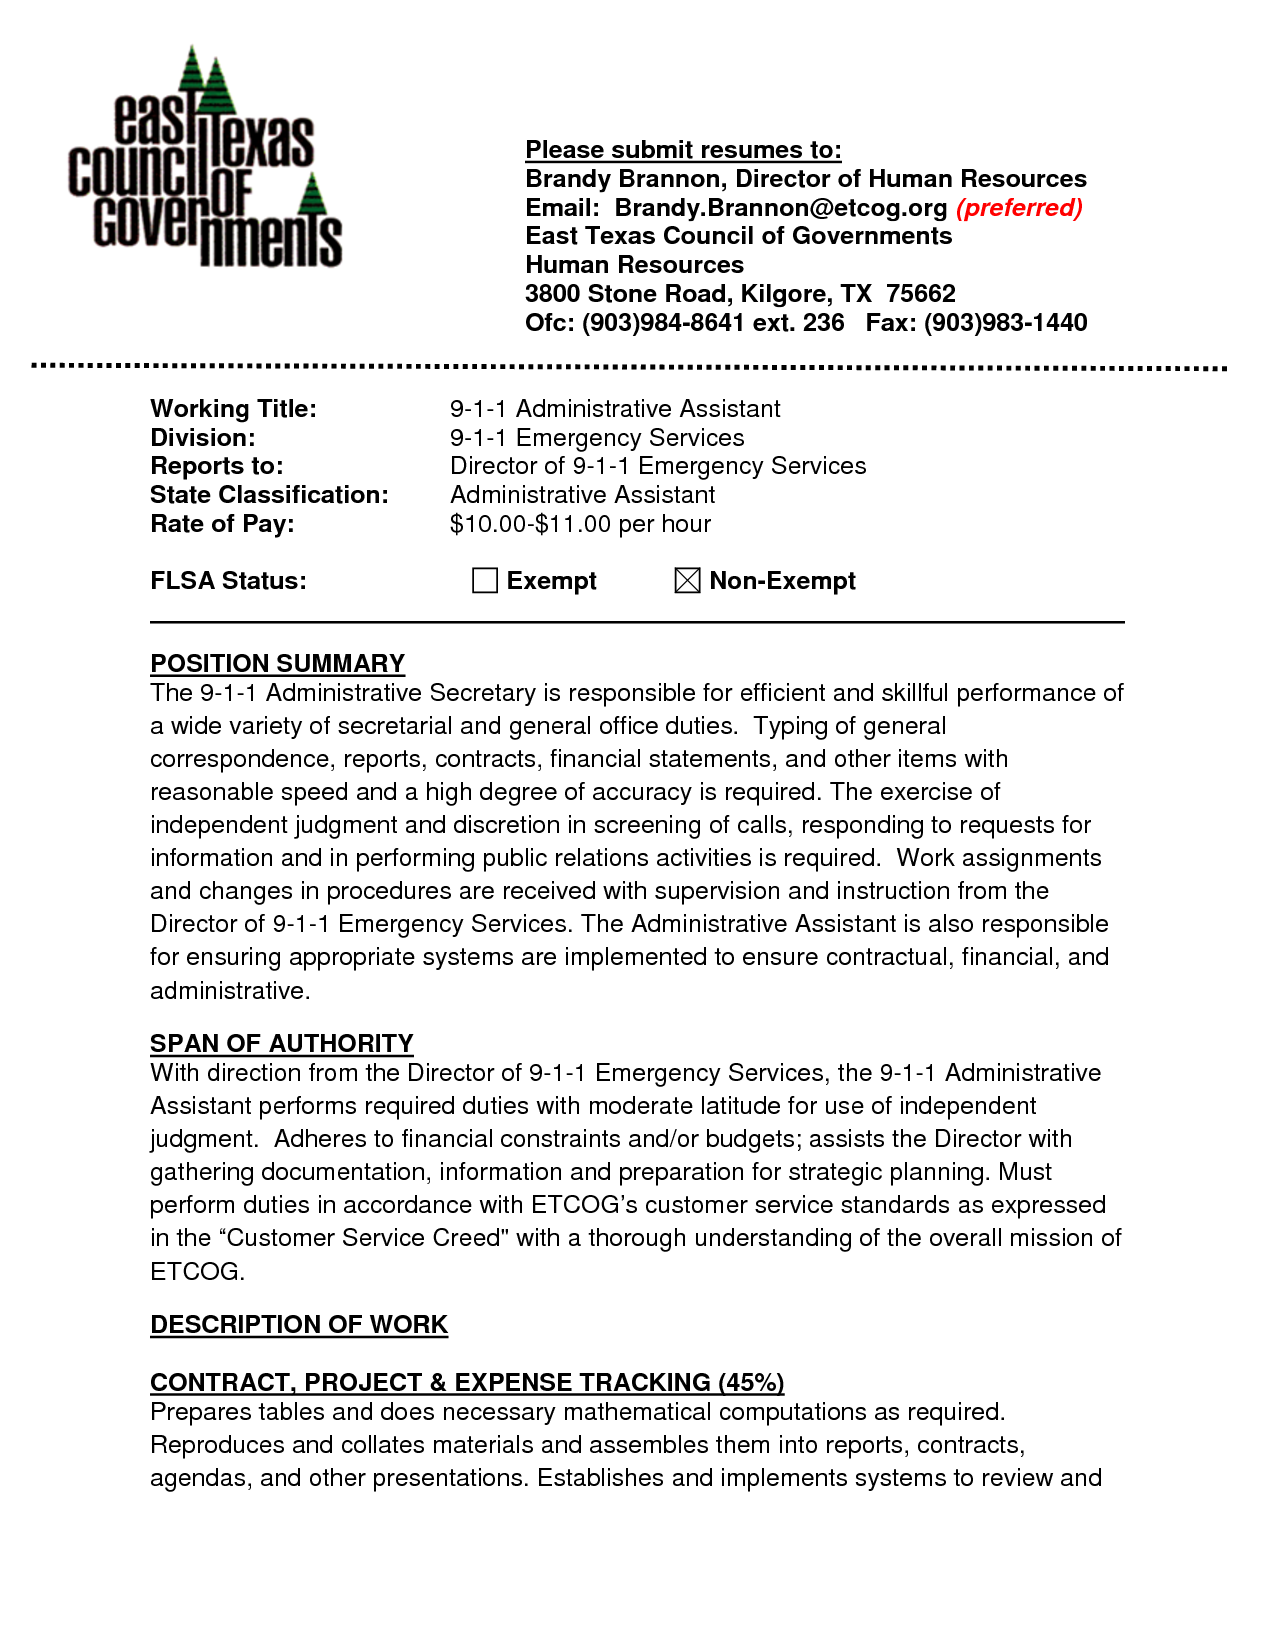 Exceptional Best Administrative Assistant Resume Admin Examples Sample Resumes  Livecareer